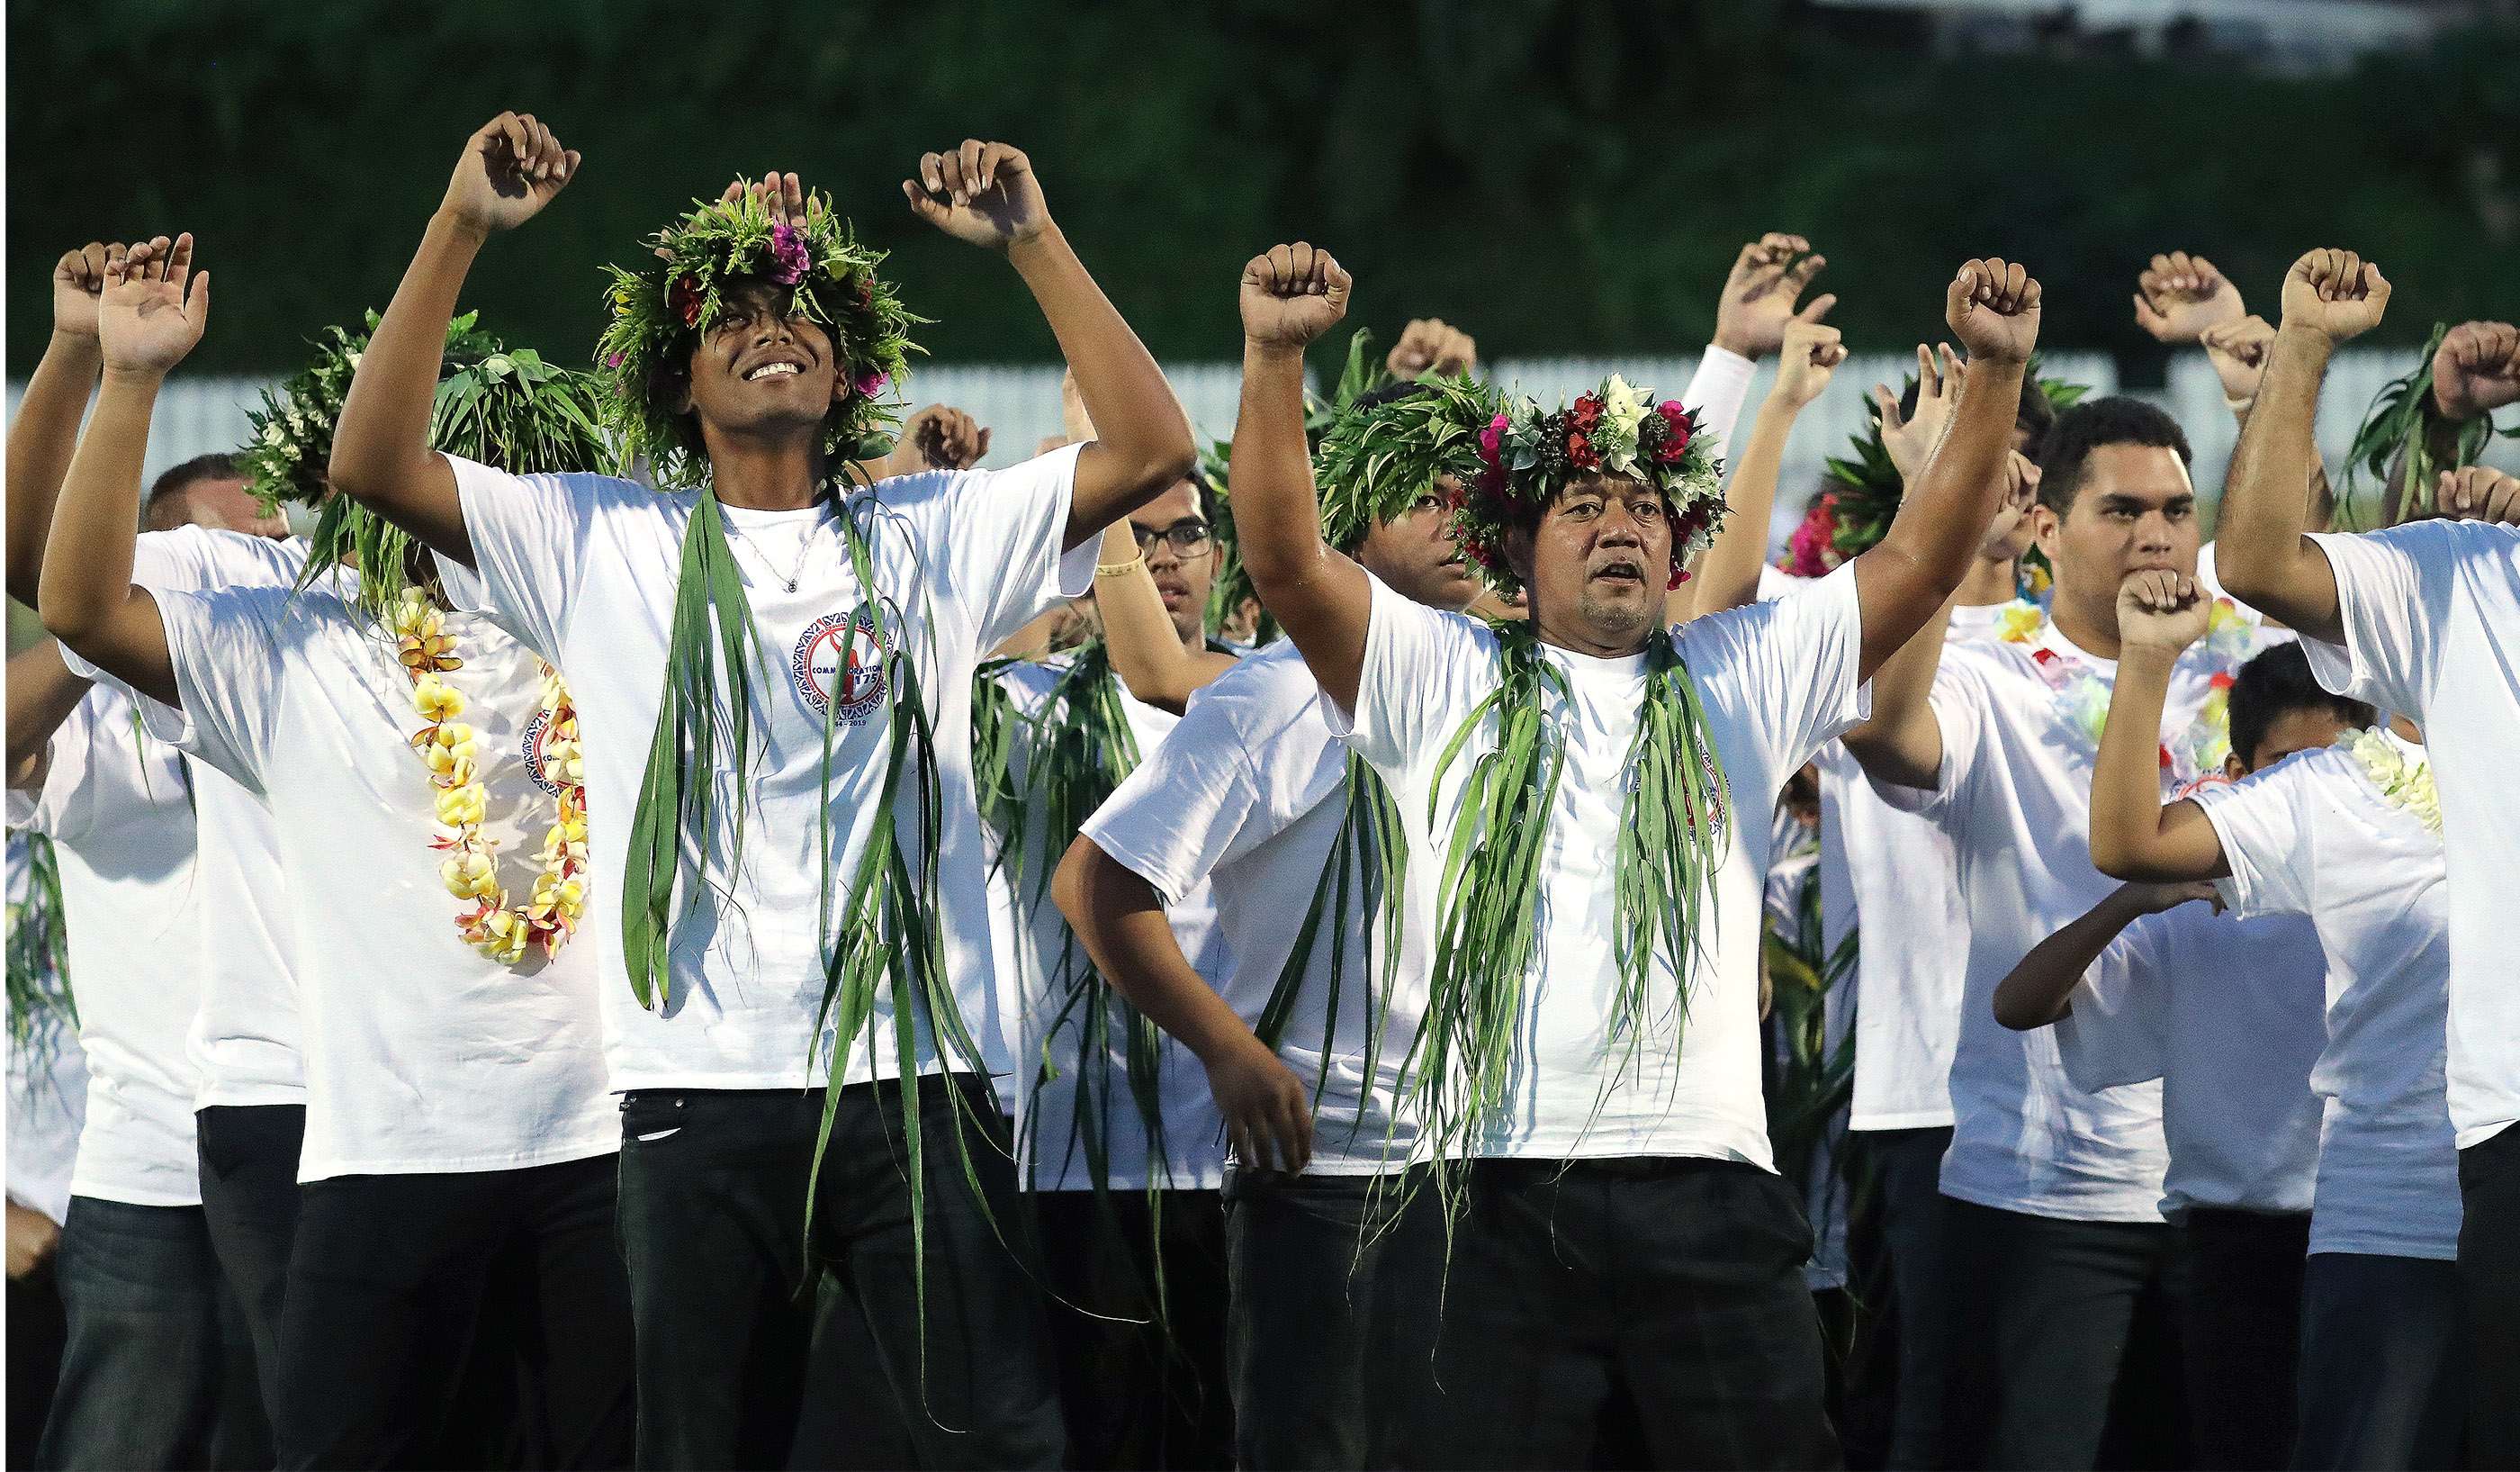 Entertainers perform the haka during a Tahiti cultural program in Papeete, Tahiti, on May 24, 2019.